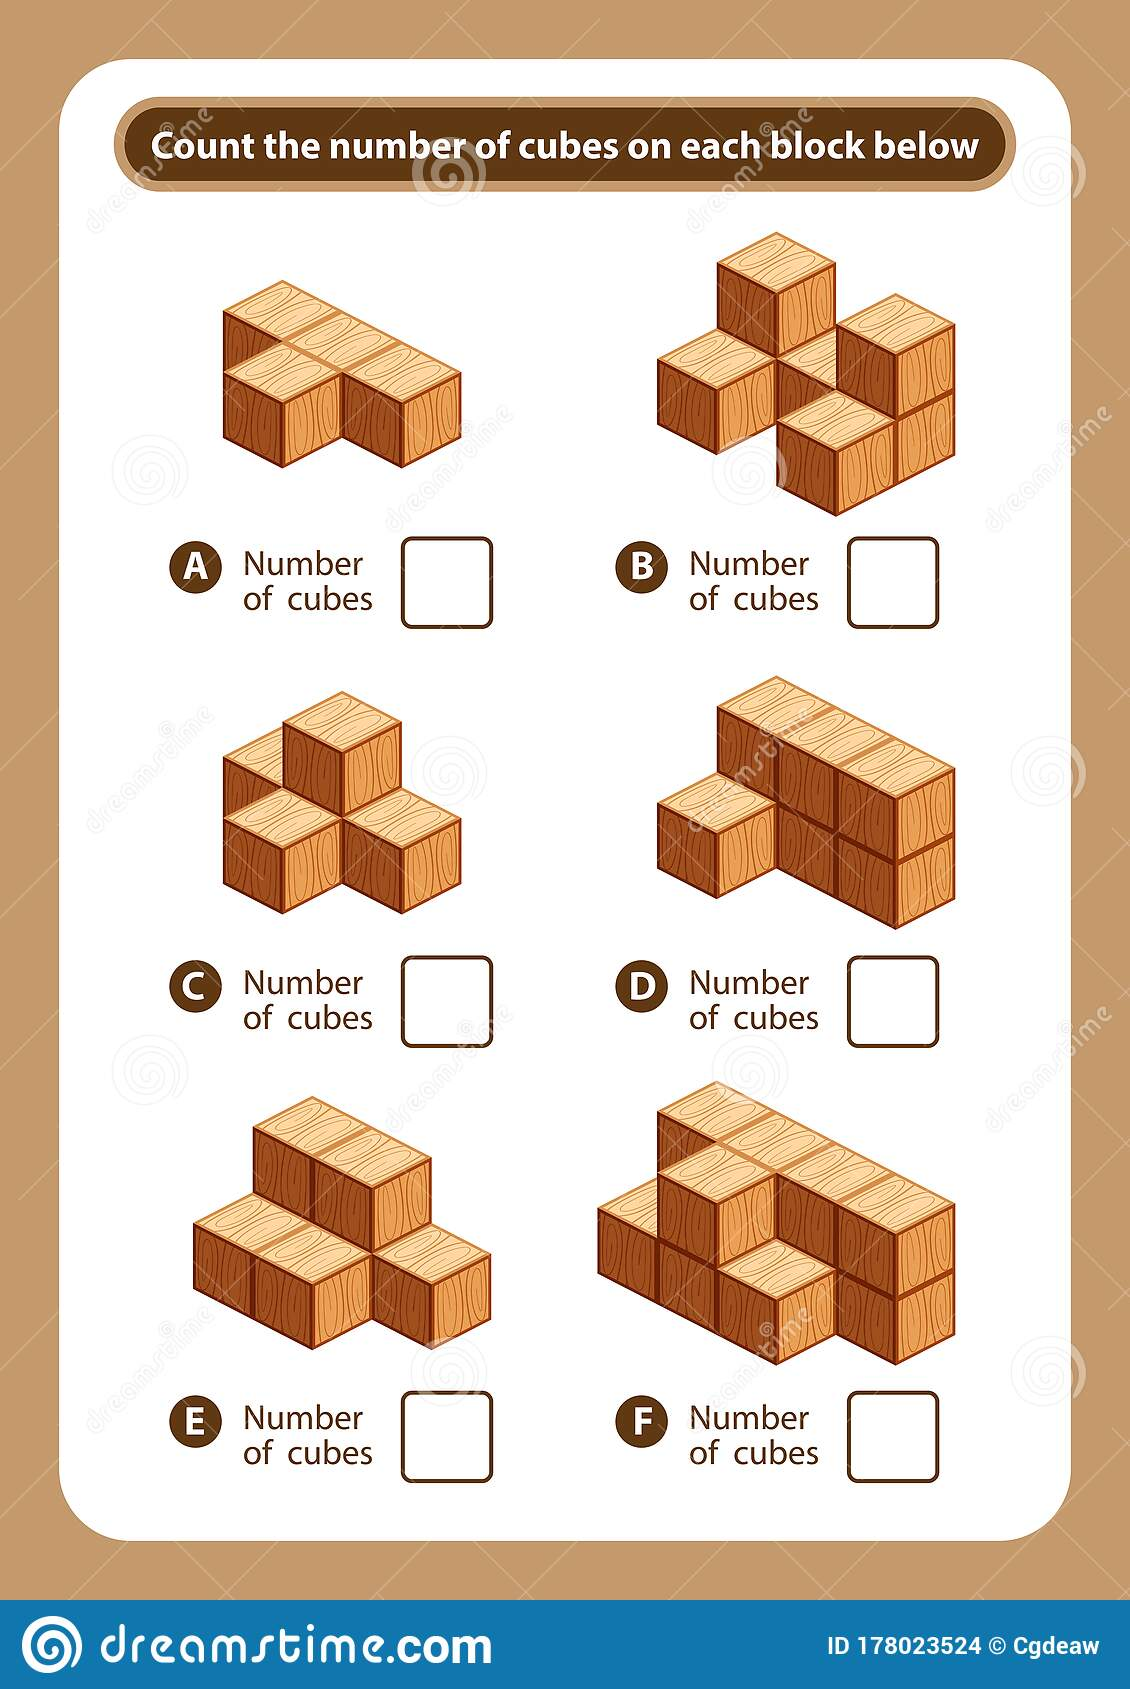 Articles Sheet Count The Number Of Cubes On Each Block